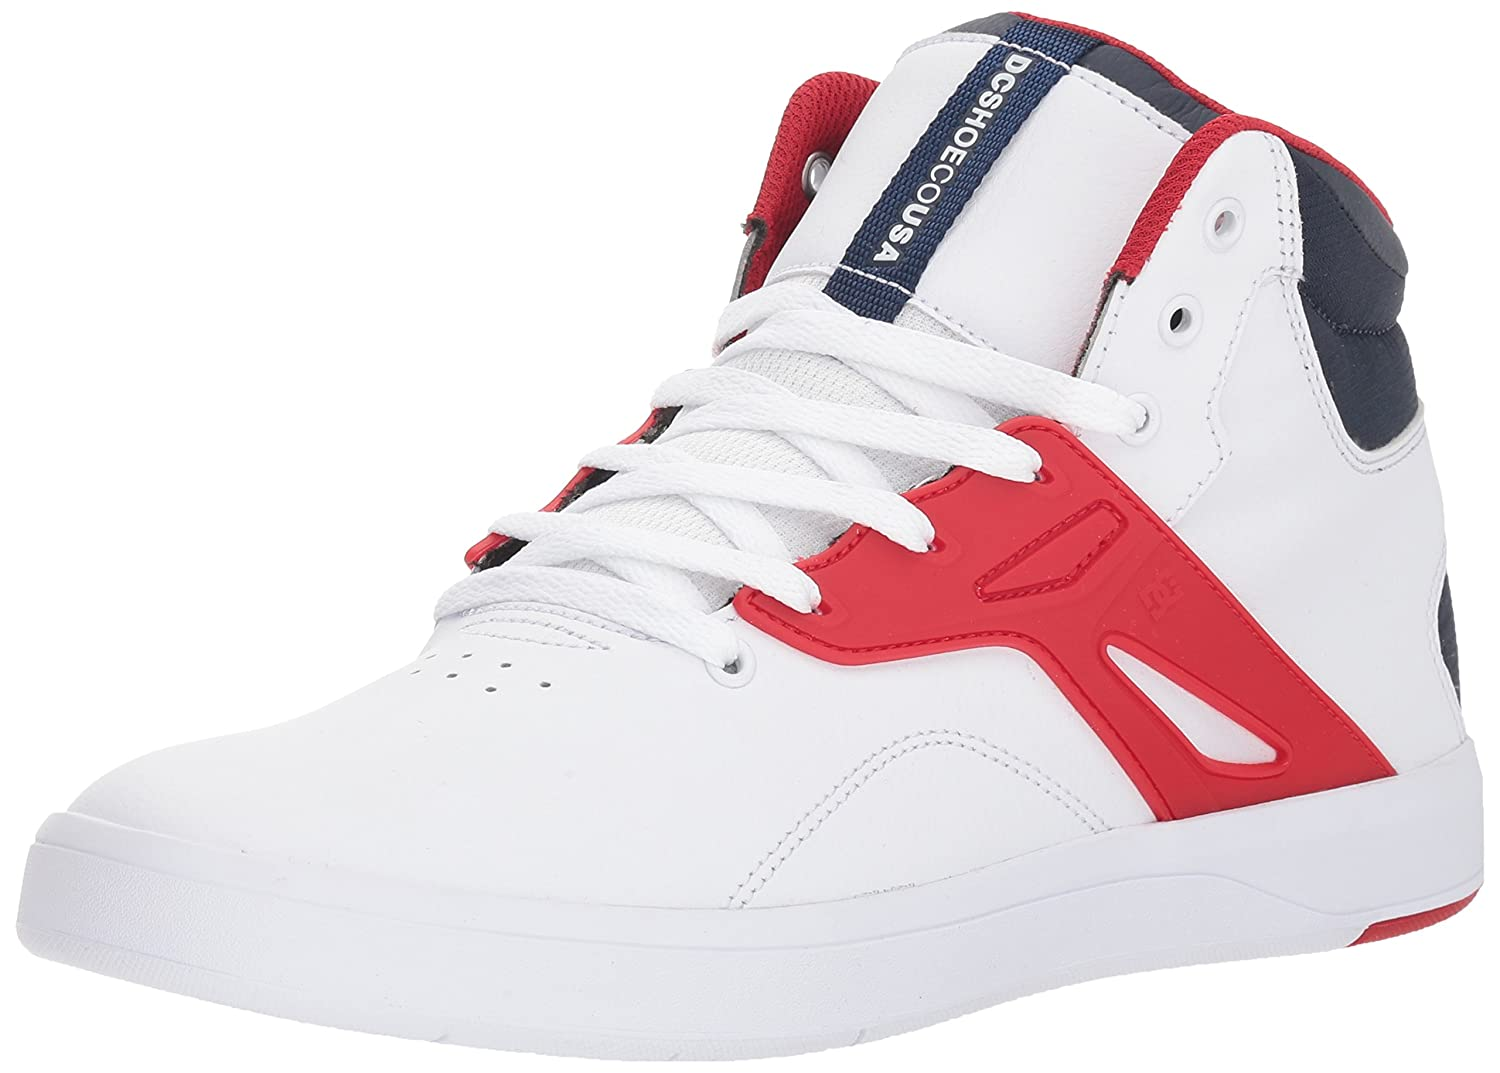 DC Men's Frequency High Skate Shoe 9 M US|White/Navy/Red